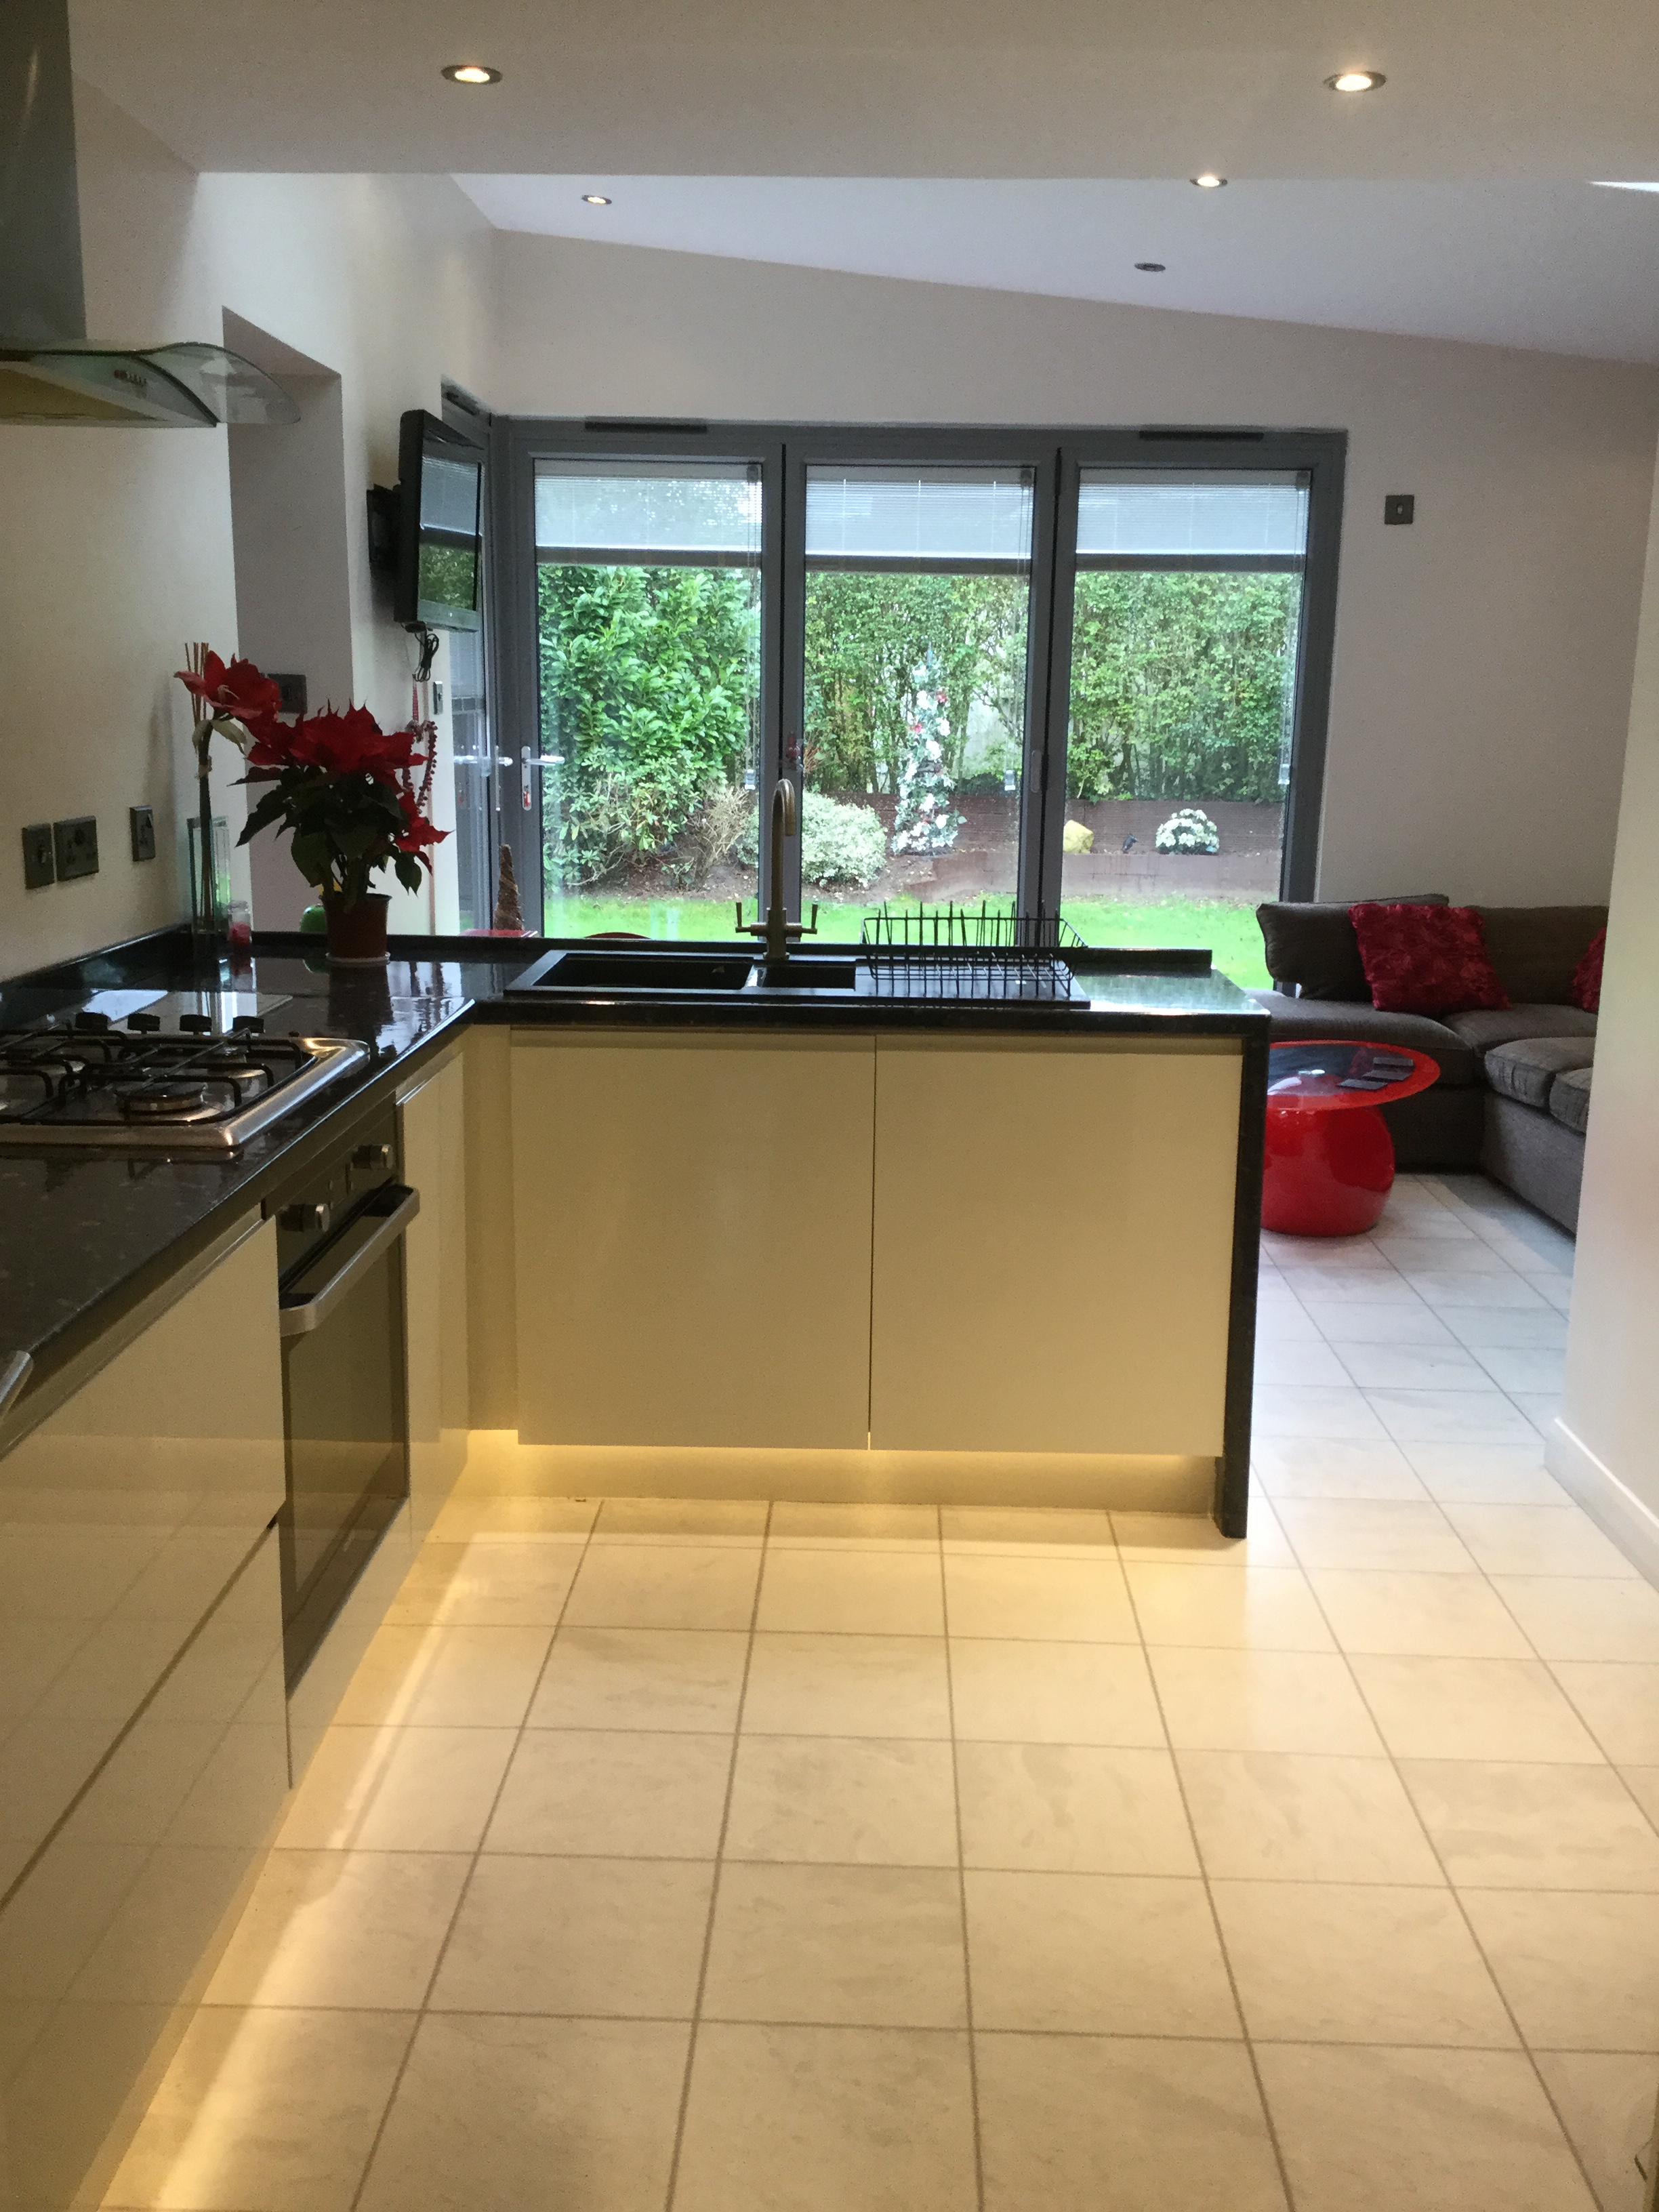 instant quote for single storey extension